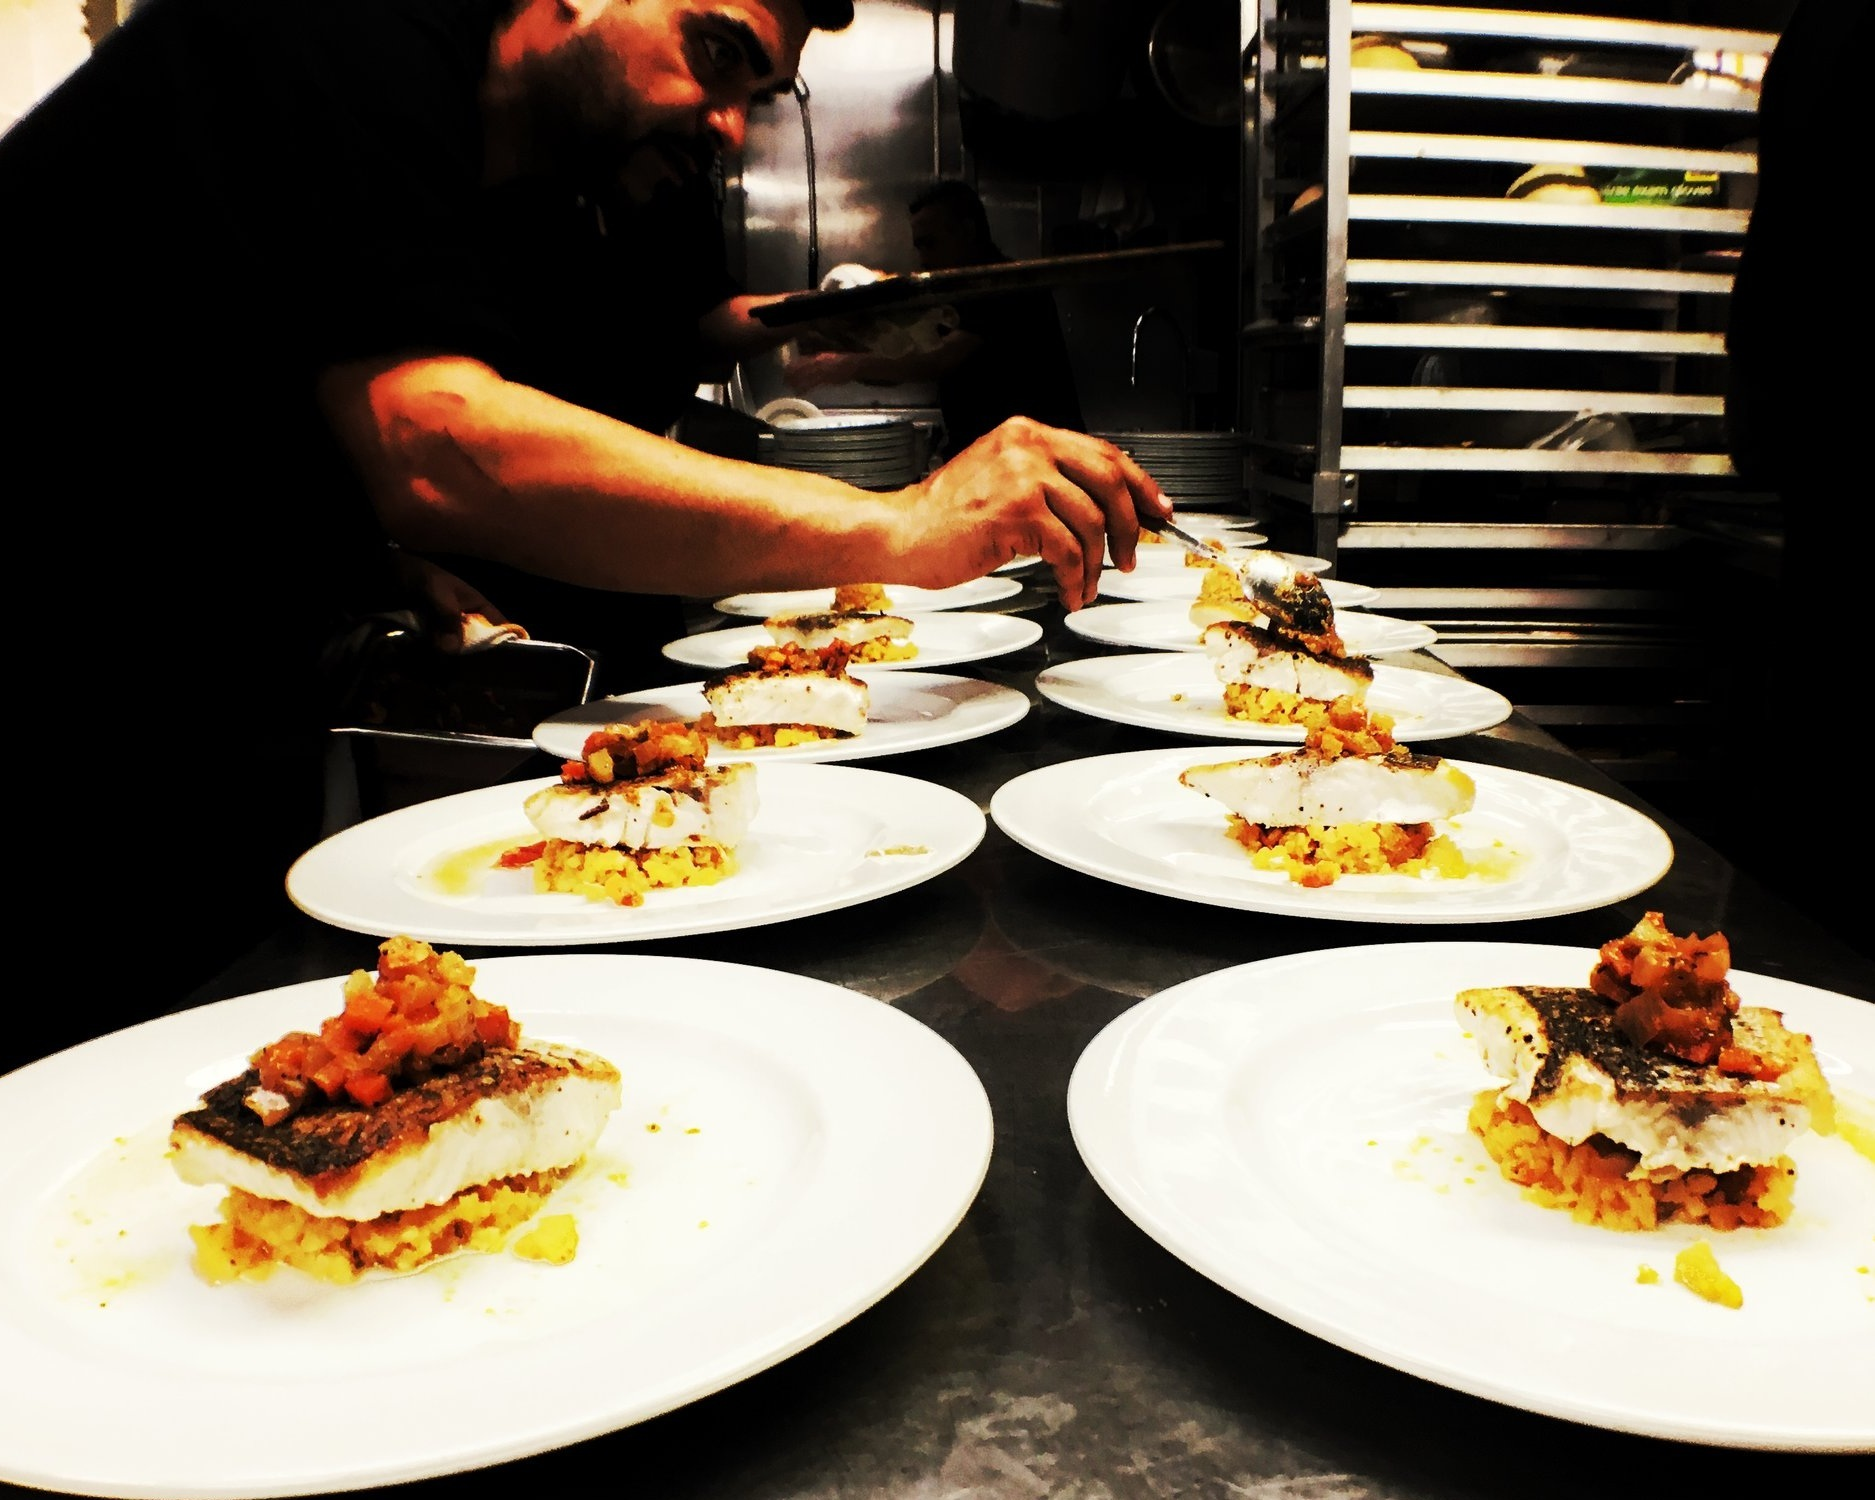 Plating_Dishes_In_The_Kitchen.jpg